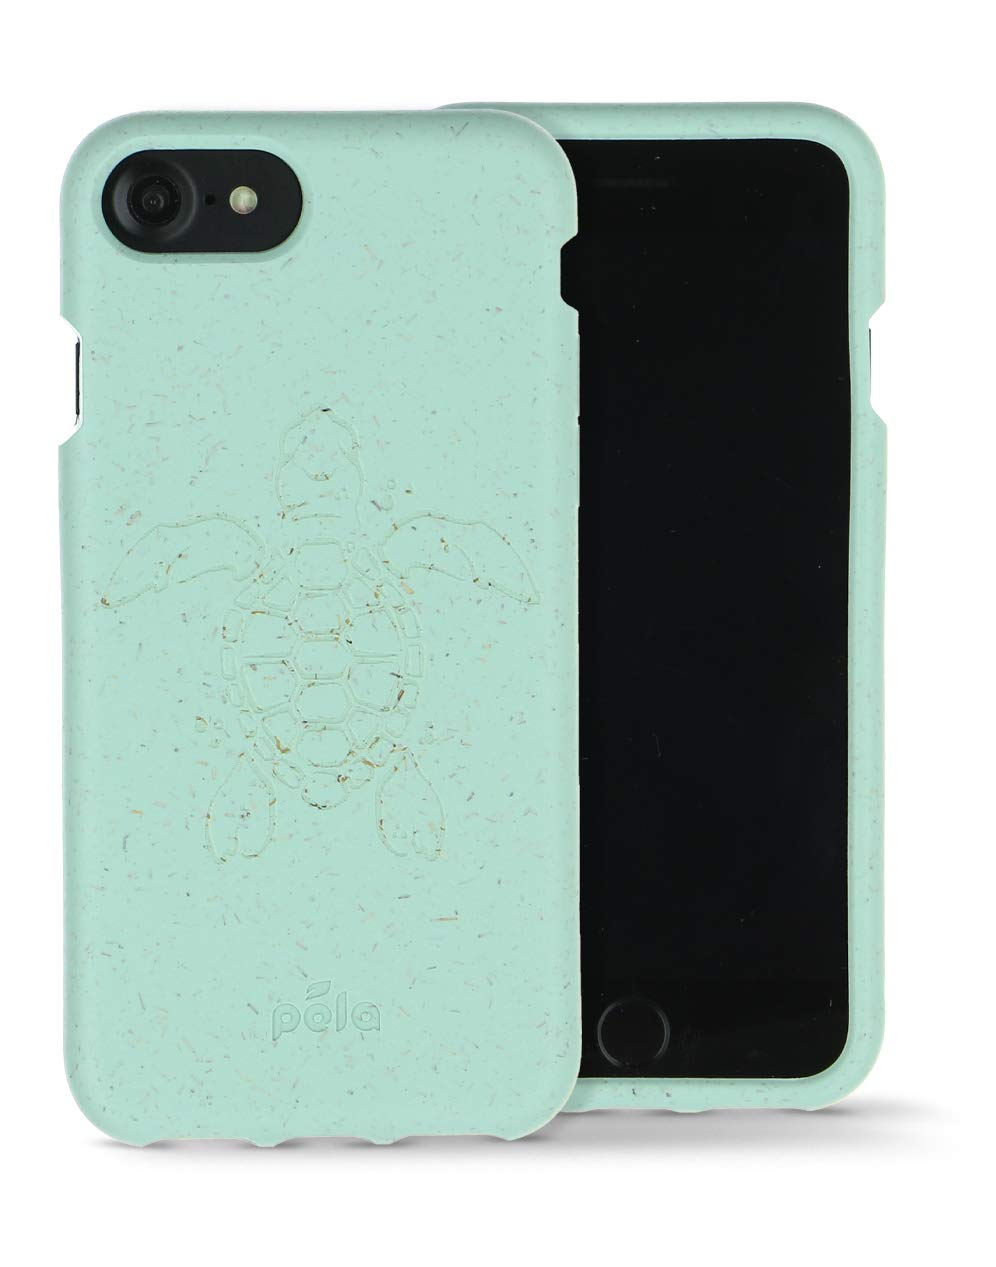 Pela: Phone Case for iPhone 6/6s/7/8/SE - 100% Compostable and Biodegradable - Eco-Friendly - Made from Plants (6/6s/7/8/SE Ocean Turtle)